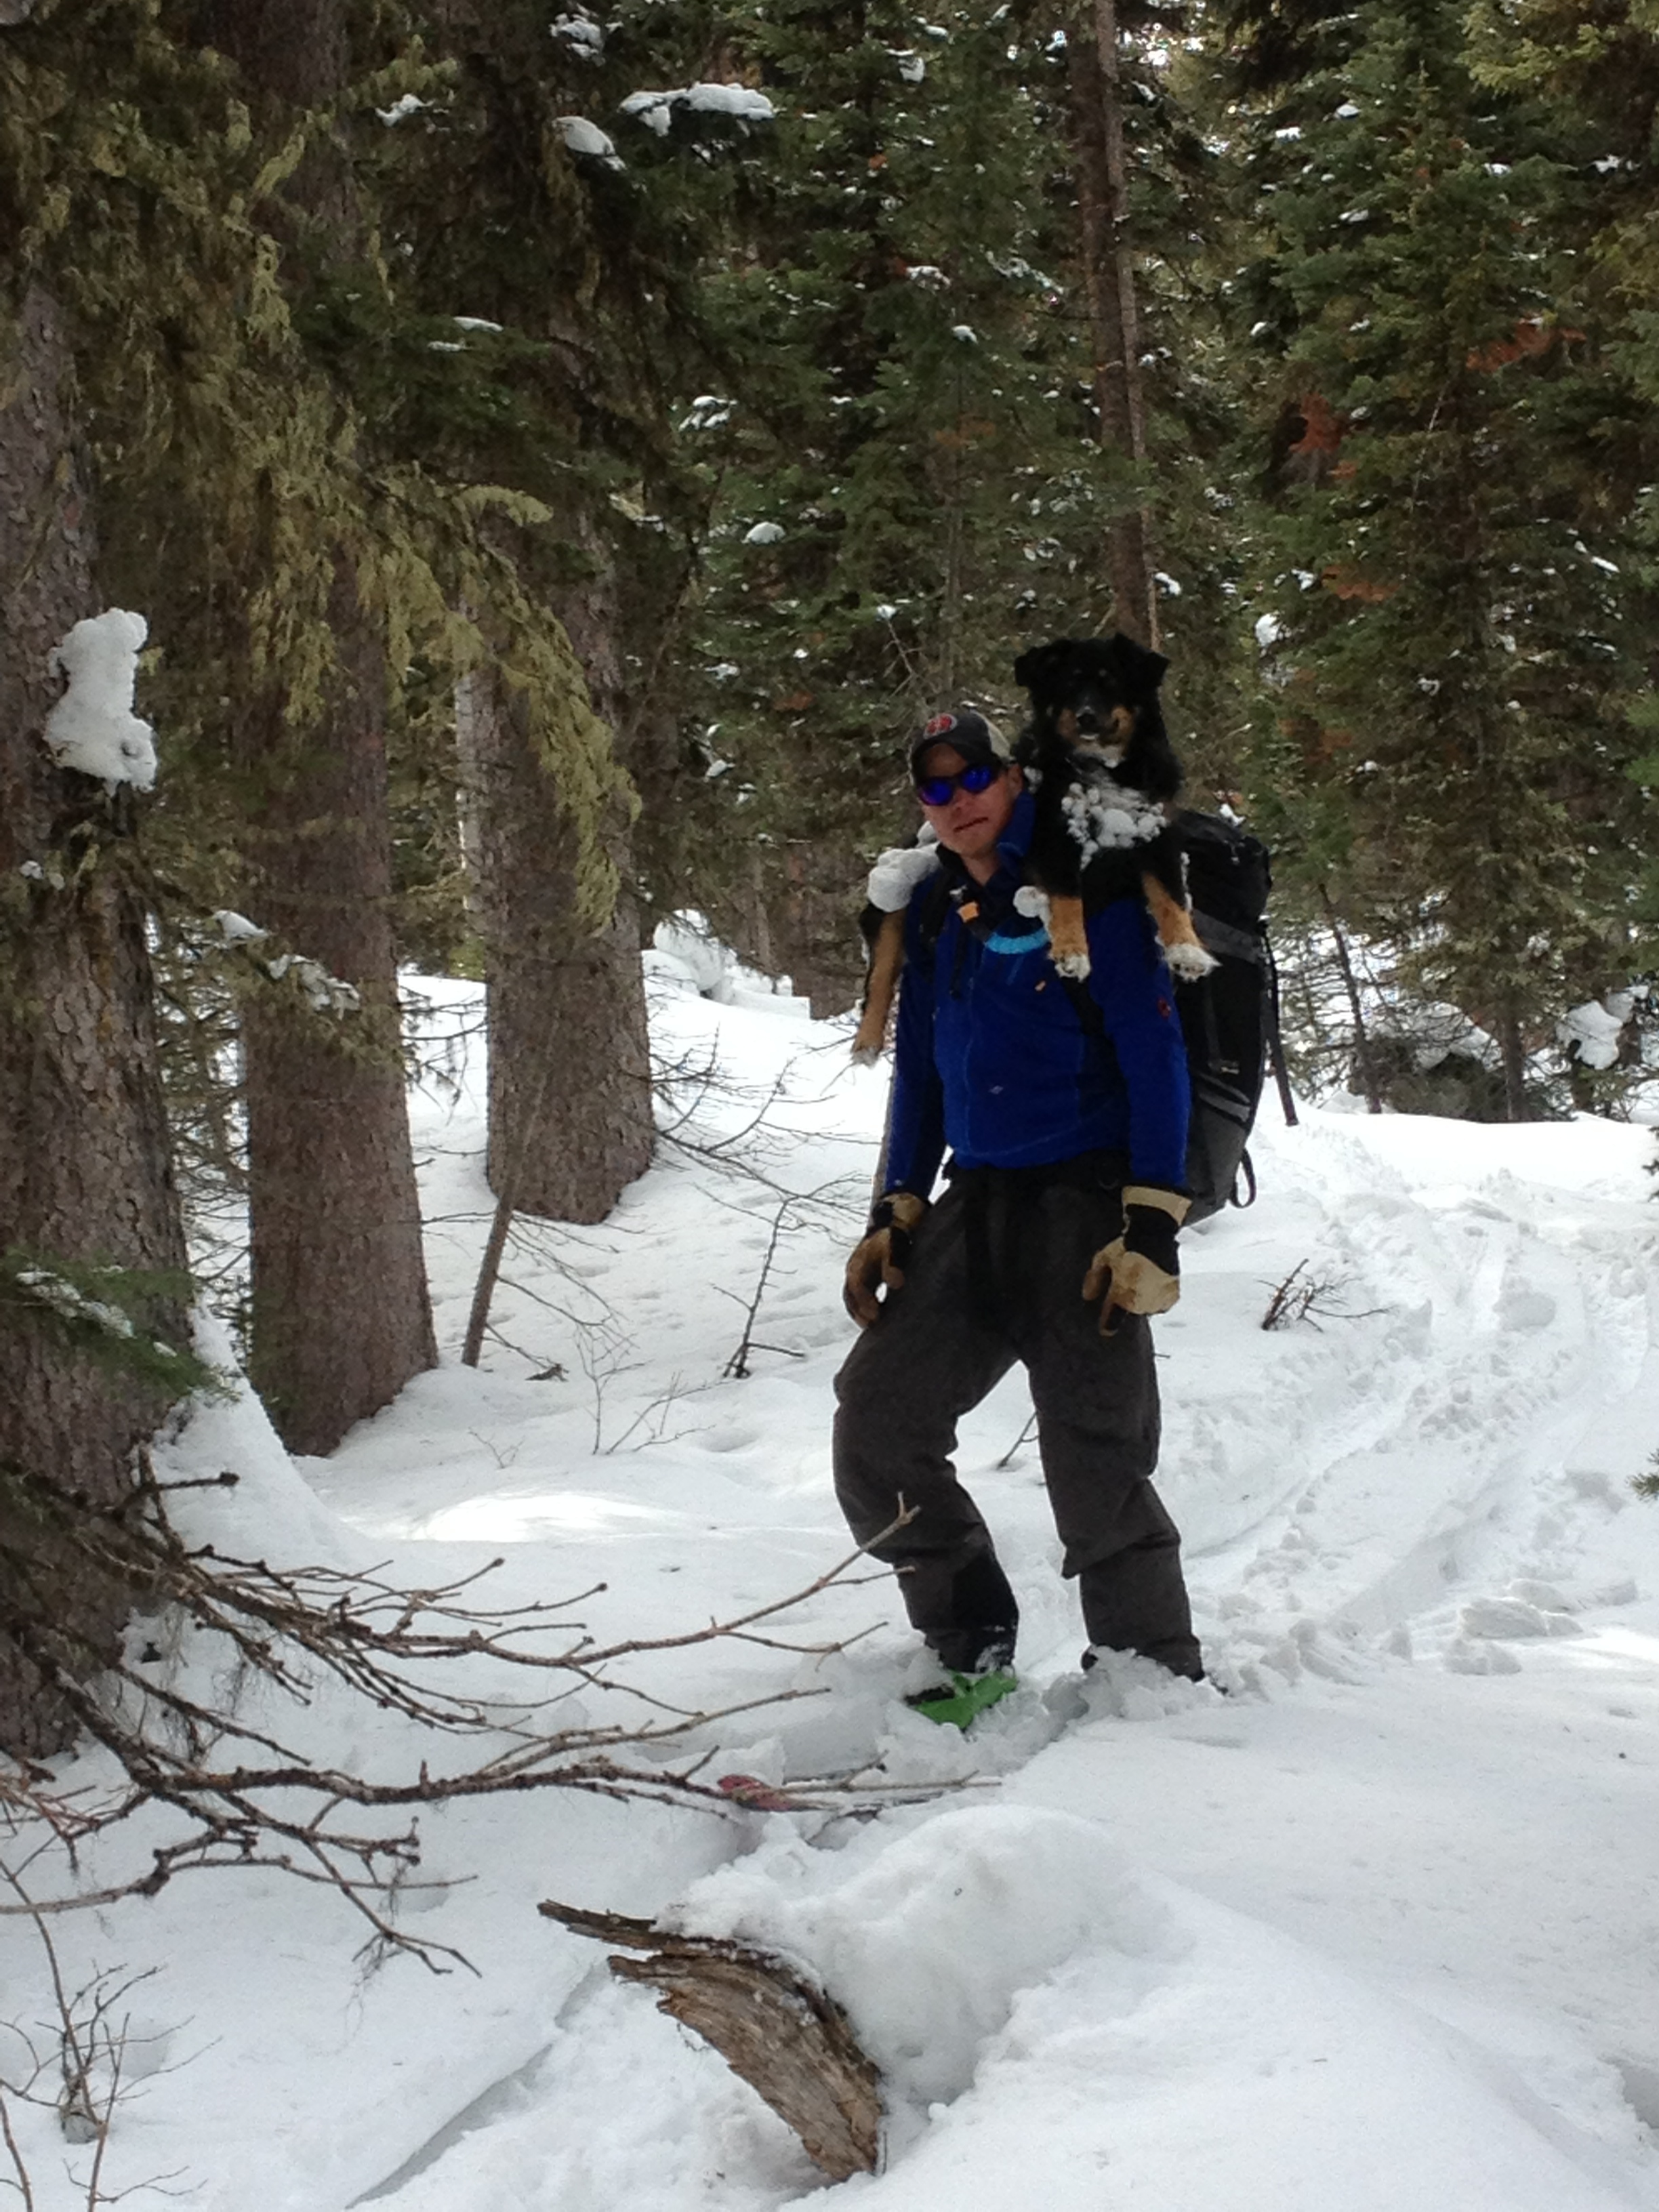 Anthony in the backcountry.